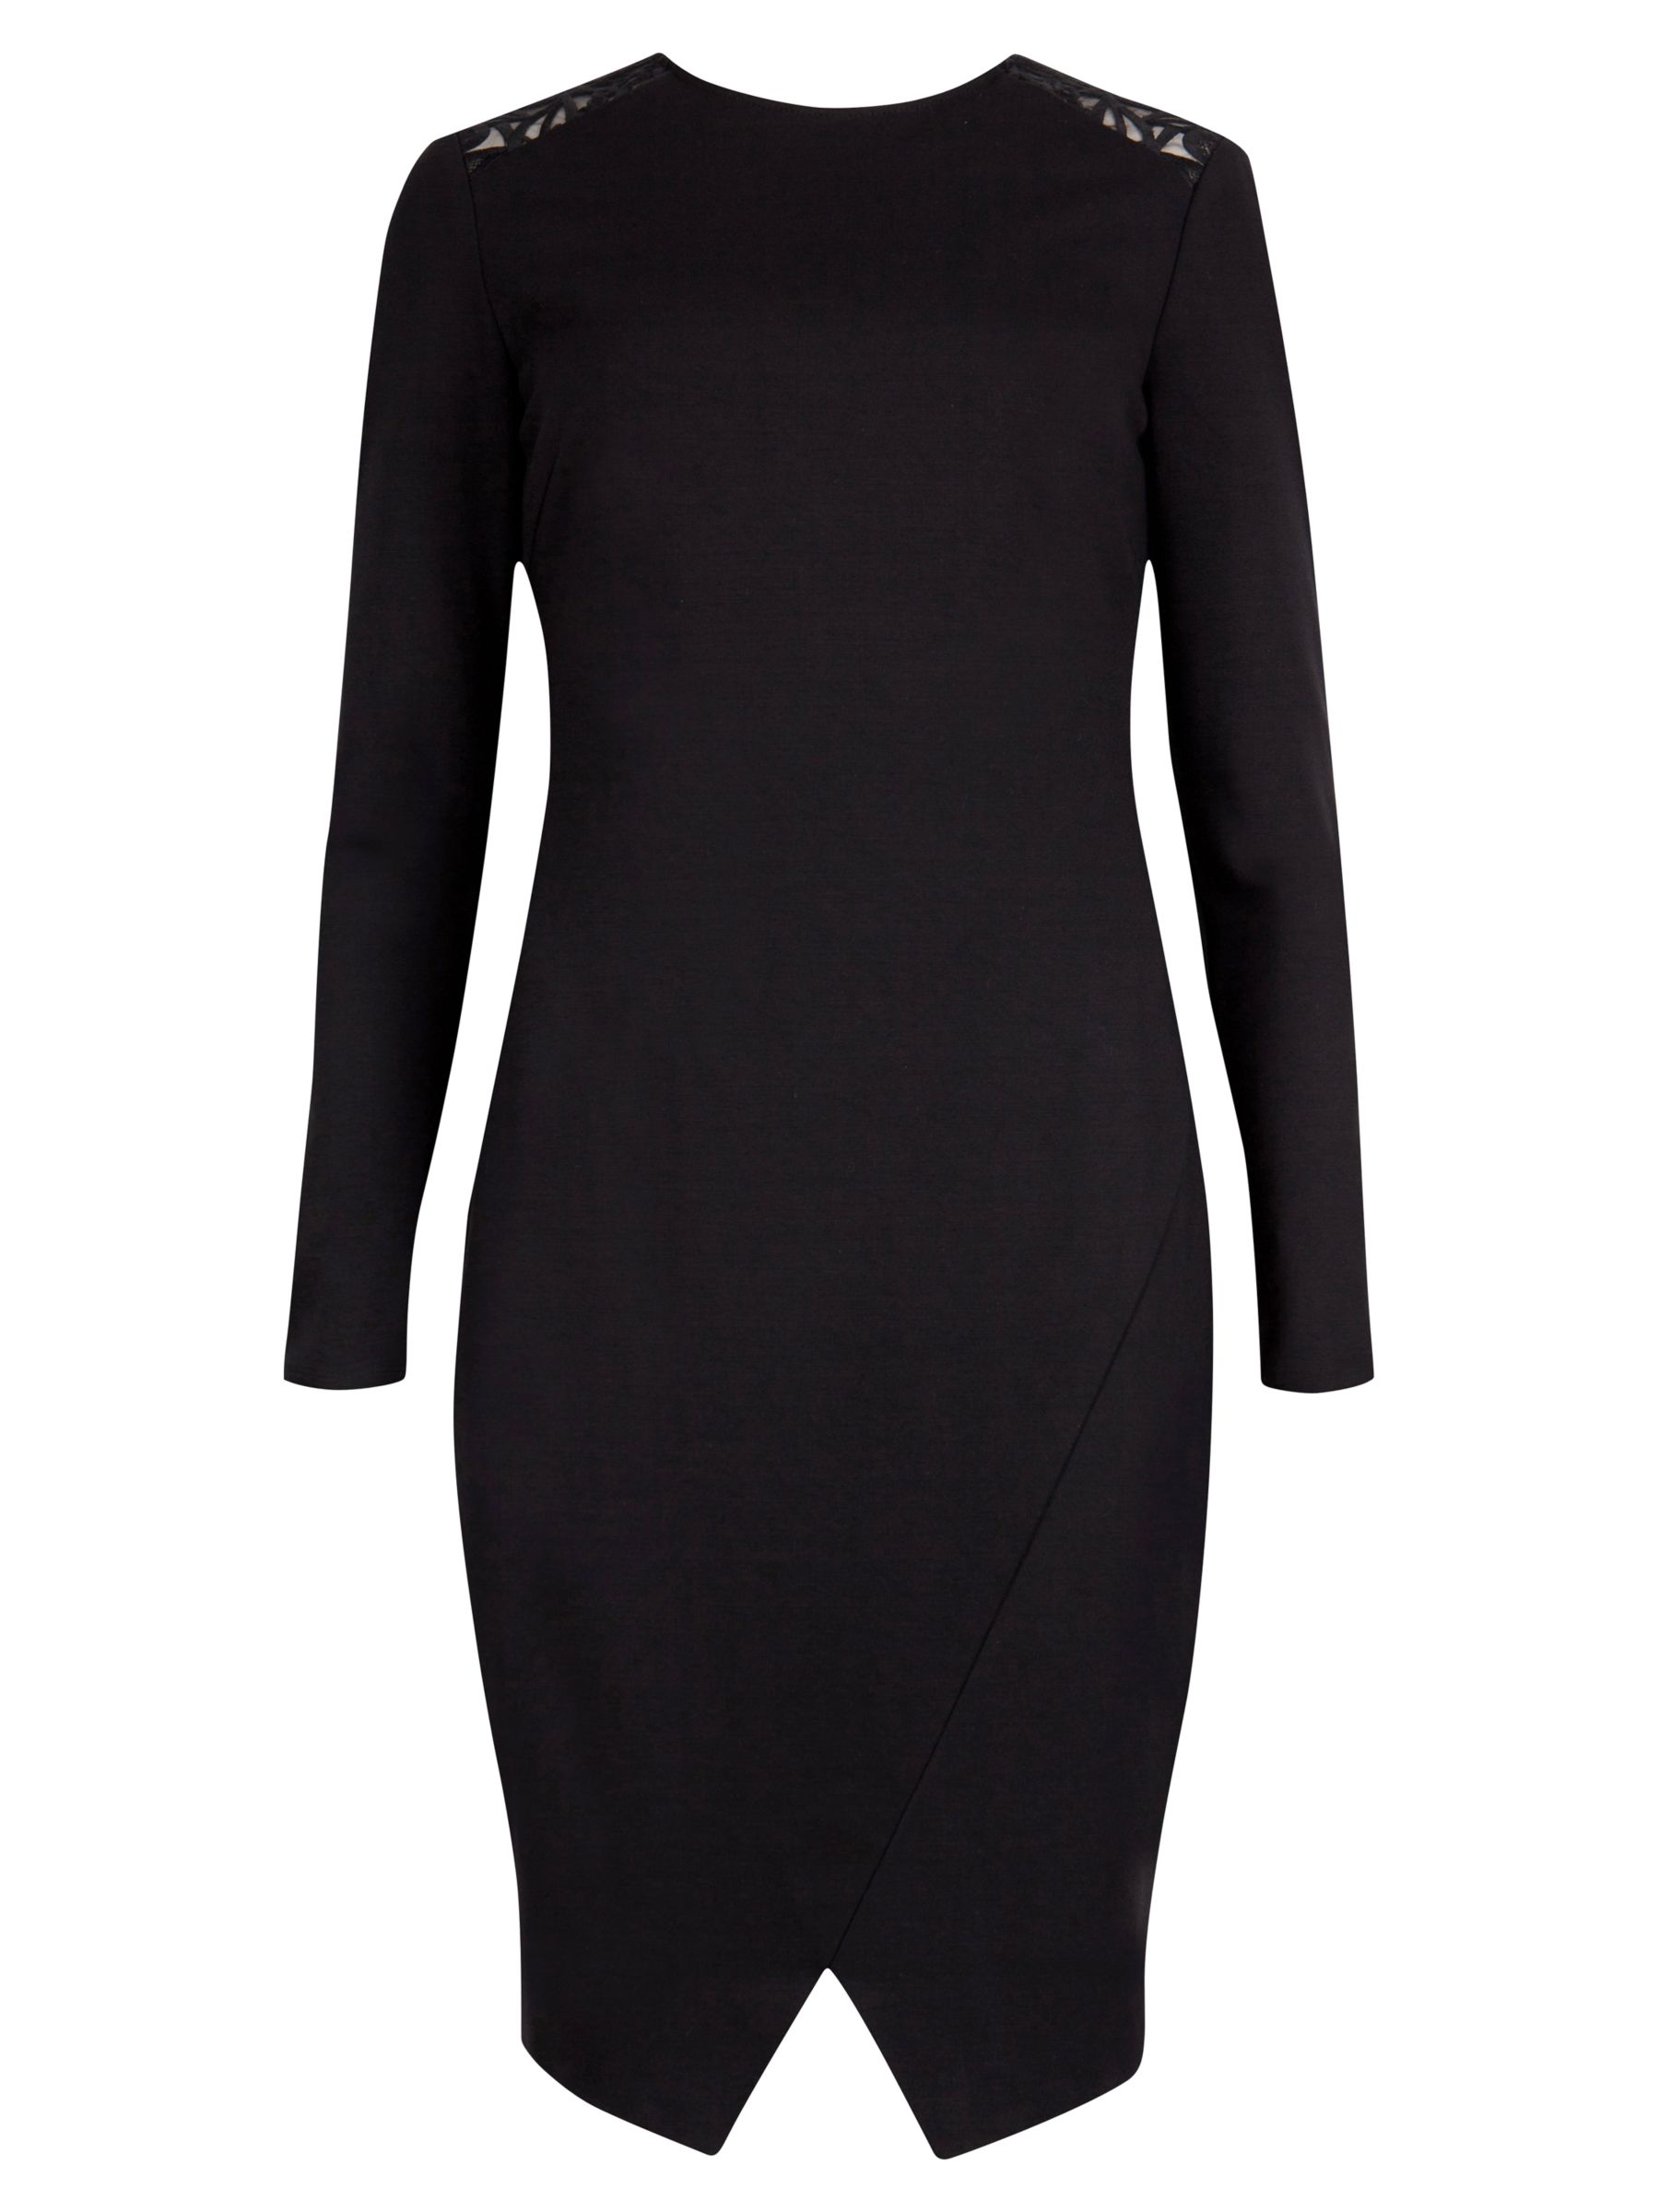 ted baker lace back detail dress black, ted, baker, lace, back, detail, dress, black, ted baker, 0|5|3|4|2|1, women, womens dresses, fashion magazine, womenswear, men, brands l-z, 1785504